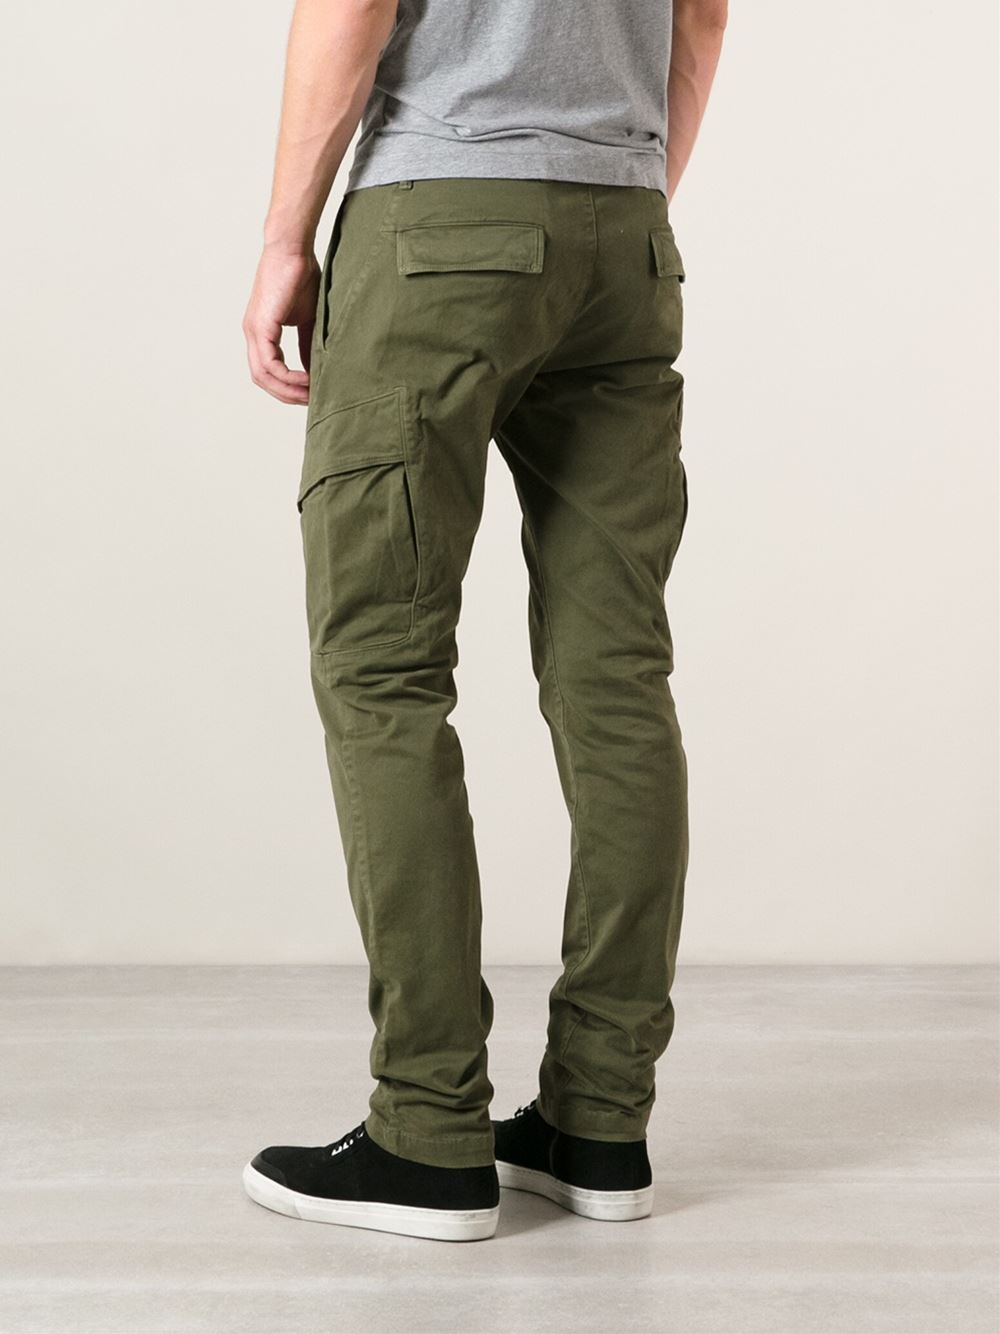 Lyst Stone Island Skinny Cargo Trousers In Green For Men